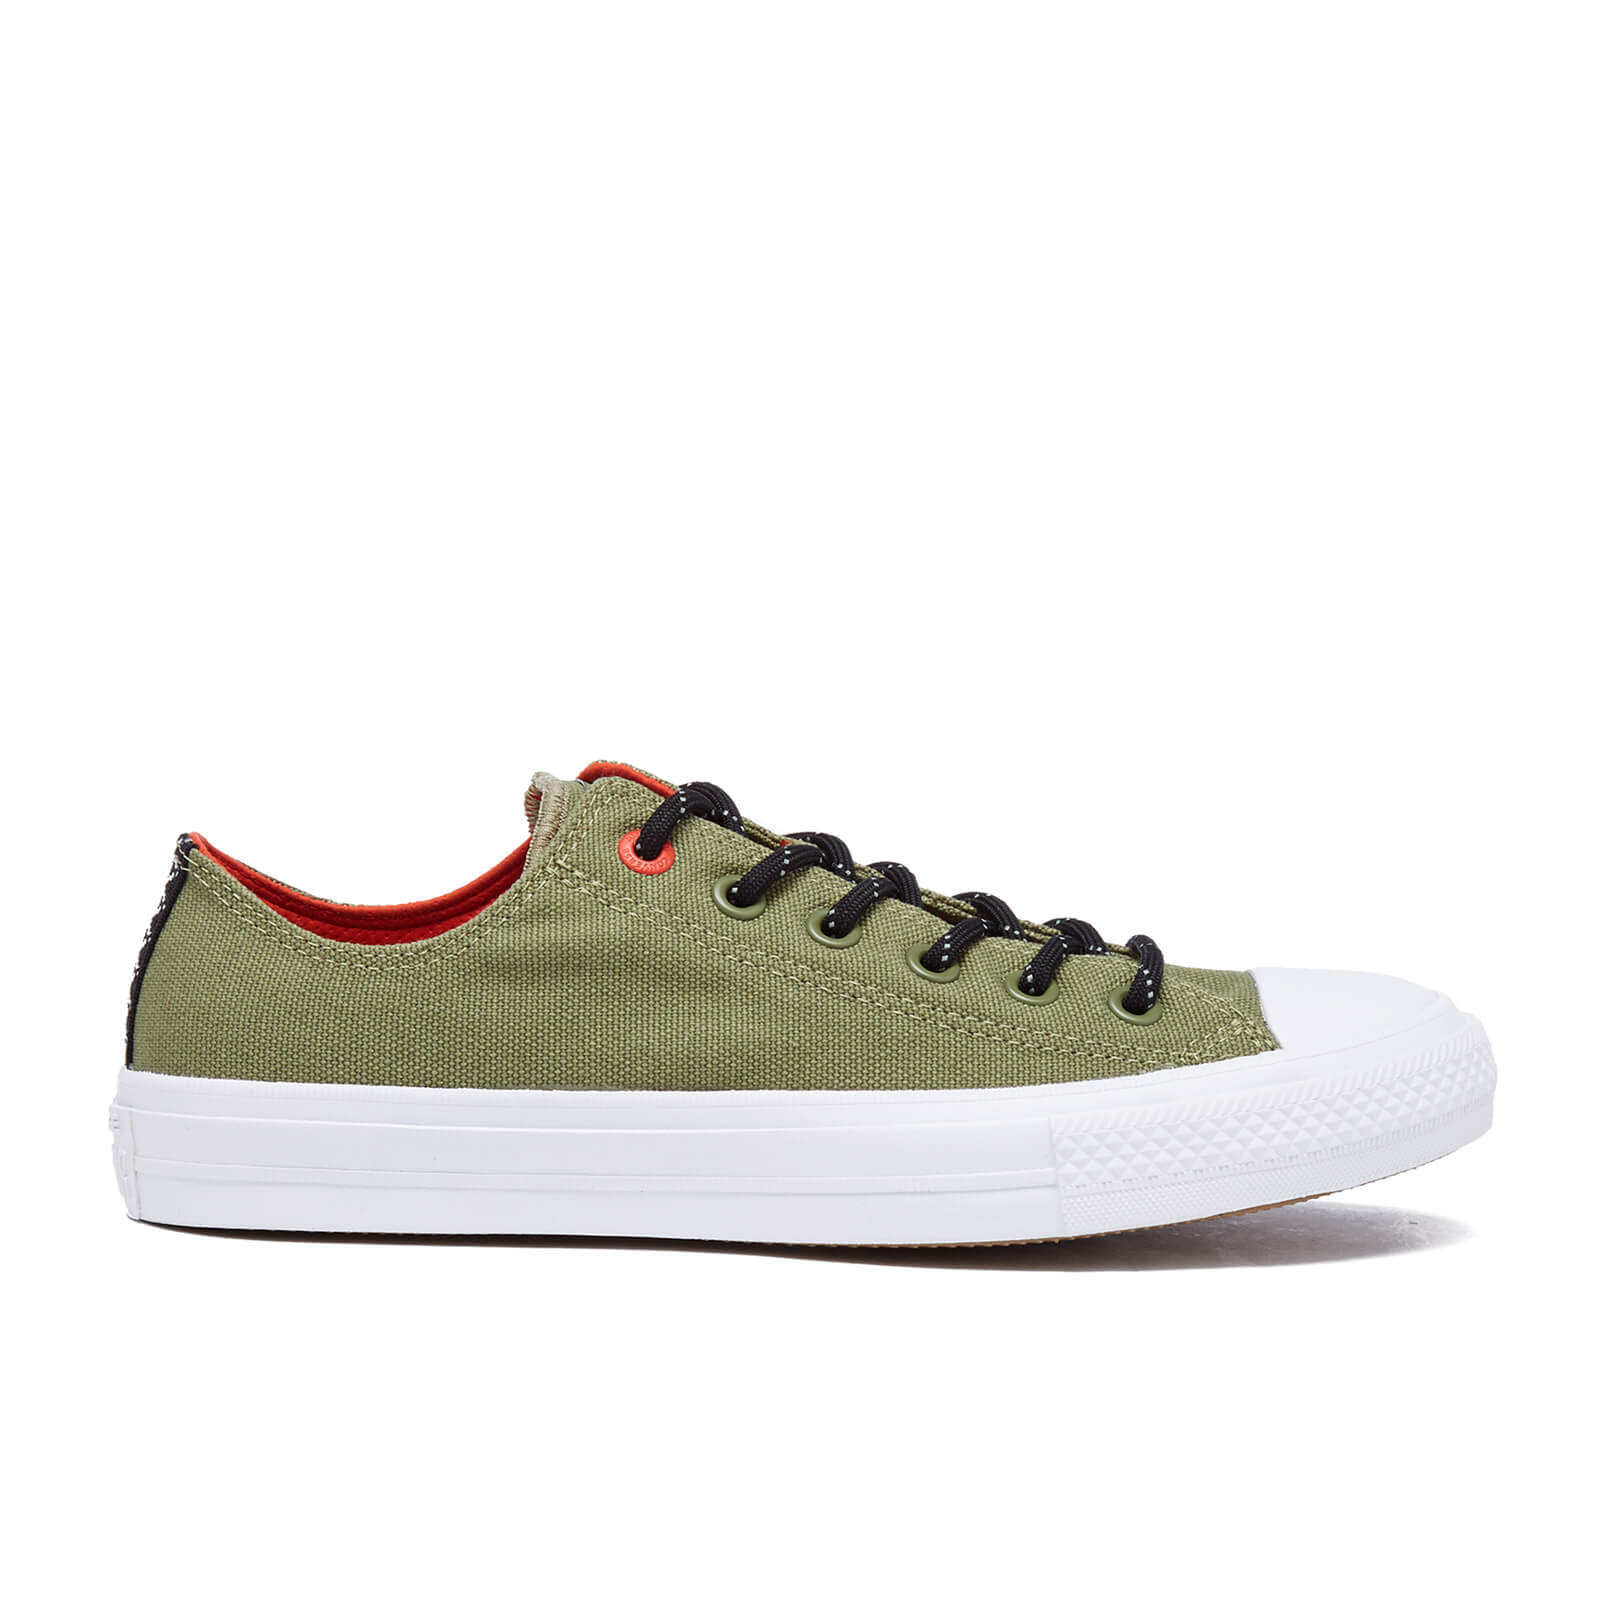 Converse Men s Chuck Taylor All Star II Shield Canvas Low Top Trainers - Fatigue  Green Signal Red  d6515c2ce